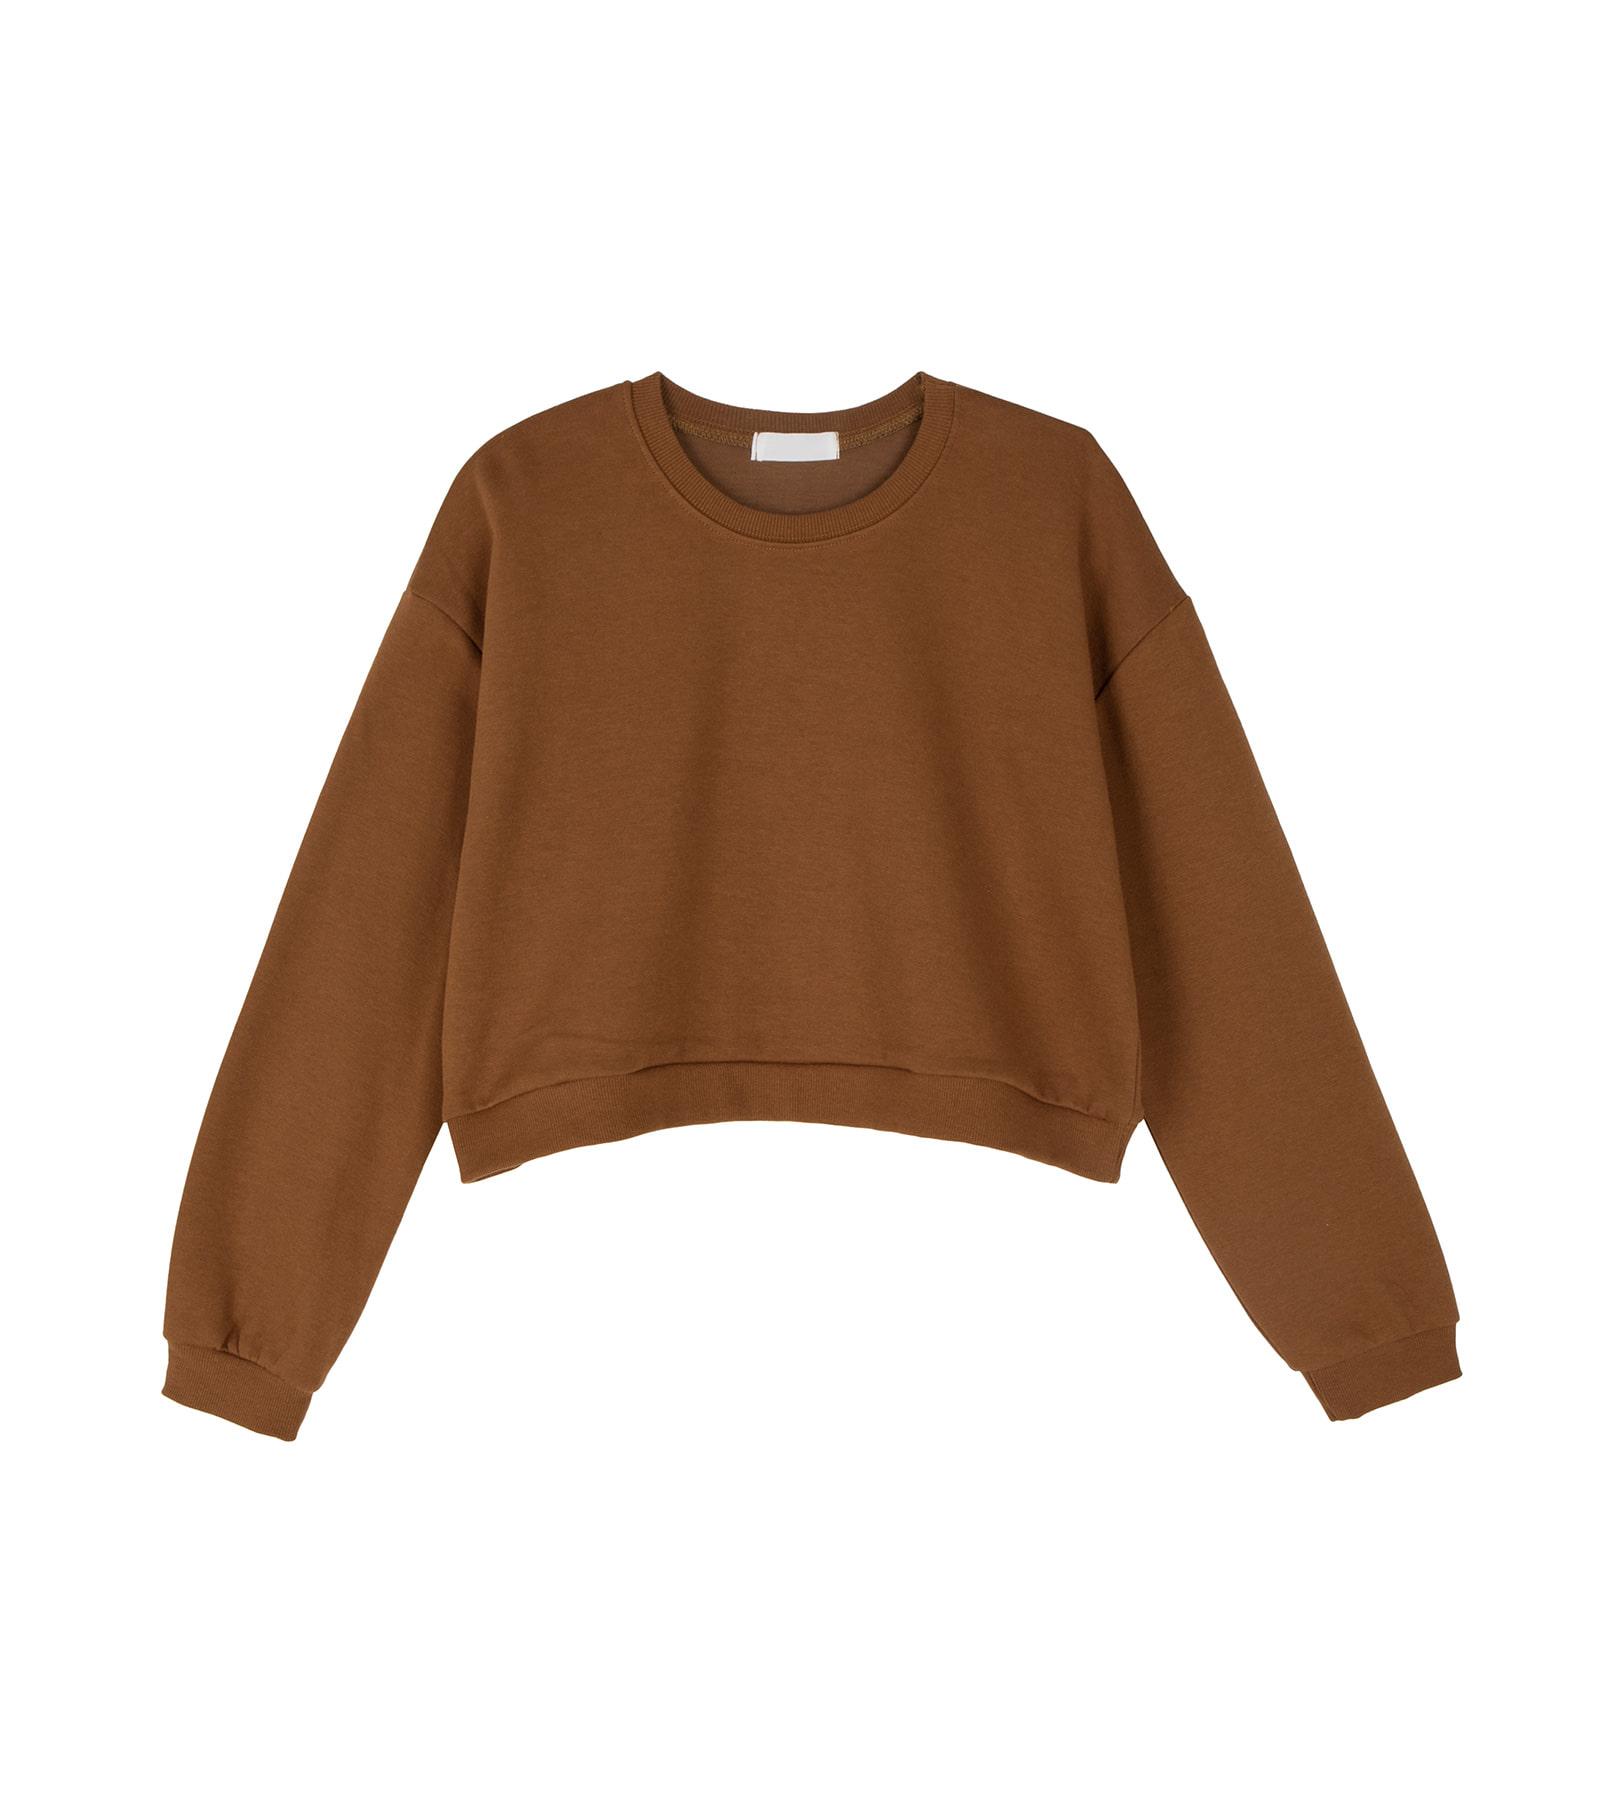 Monday cropped crew neck sweatshirt